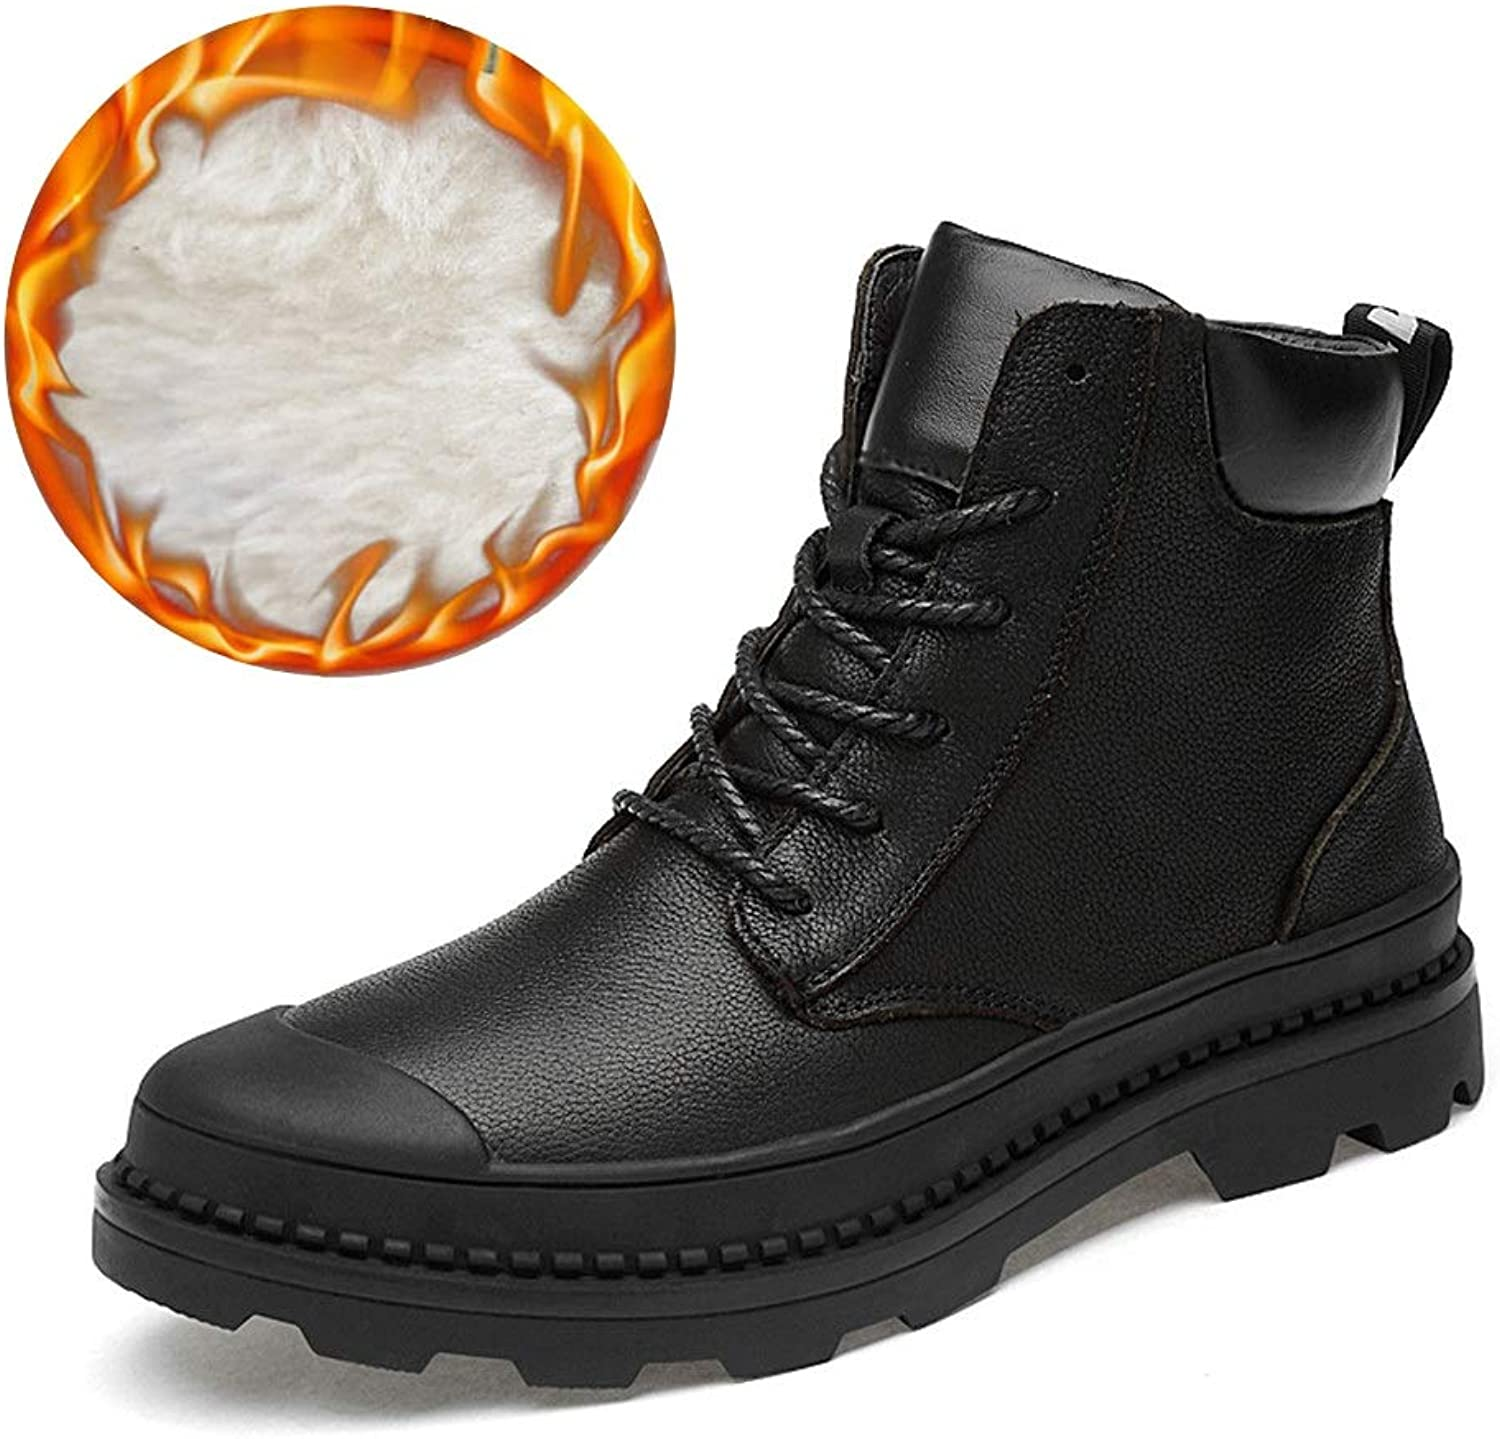 XHD- Classic shoes Men's Simple Fashion Ankle Boots Casual top Lacing Waterproof Outdoor Boots(Warm Velvet Optional)